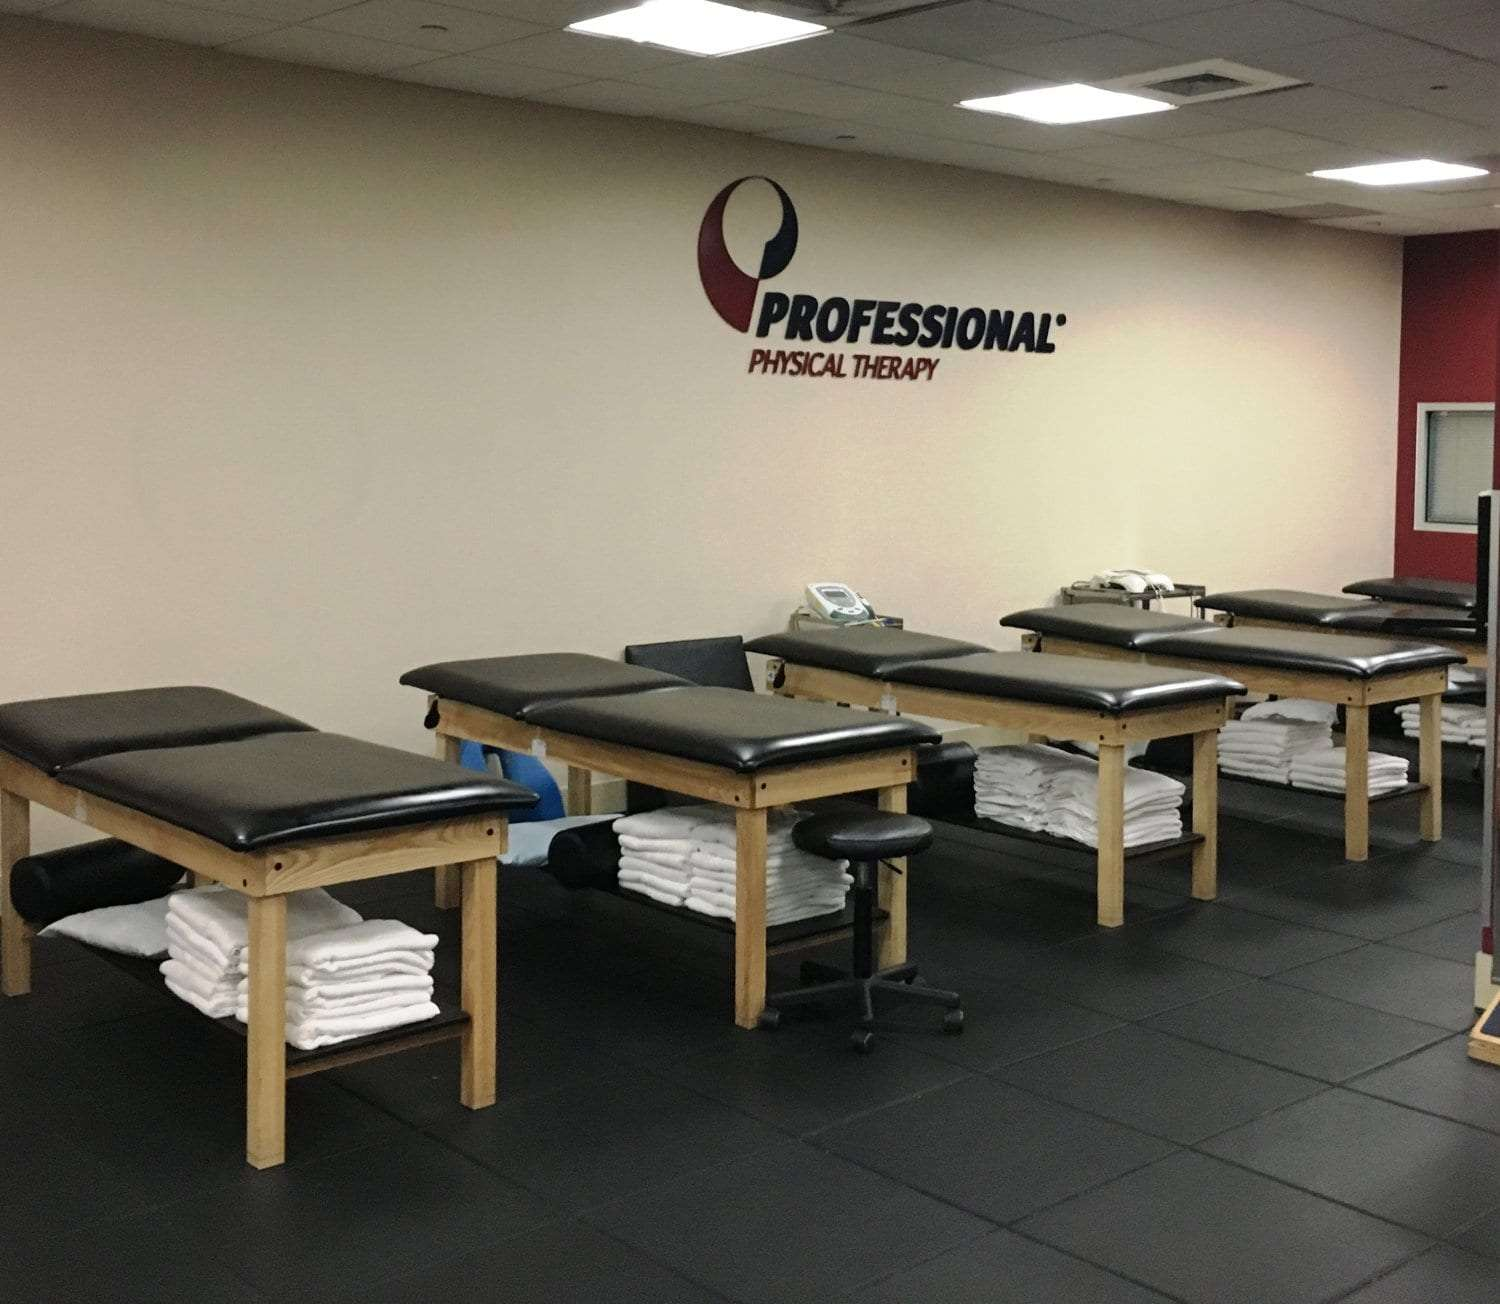 An image of six stretch beds at our physical therapy clinic in Manhattan, New York City at Midtown East on Fifth Avenue.